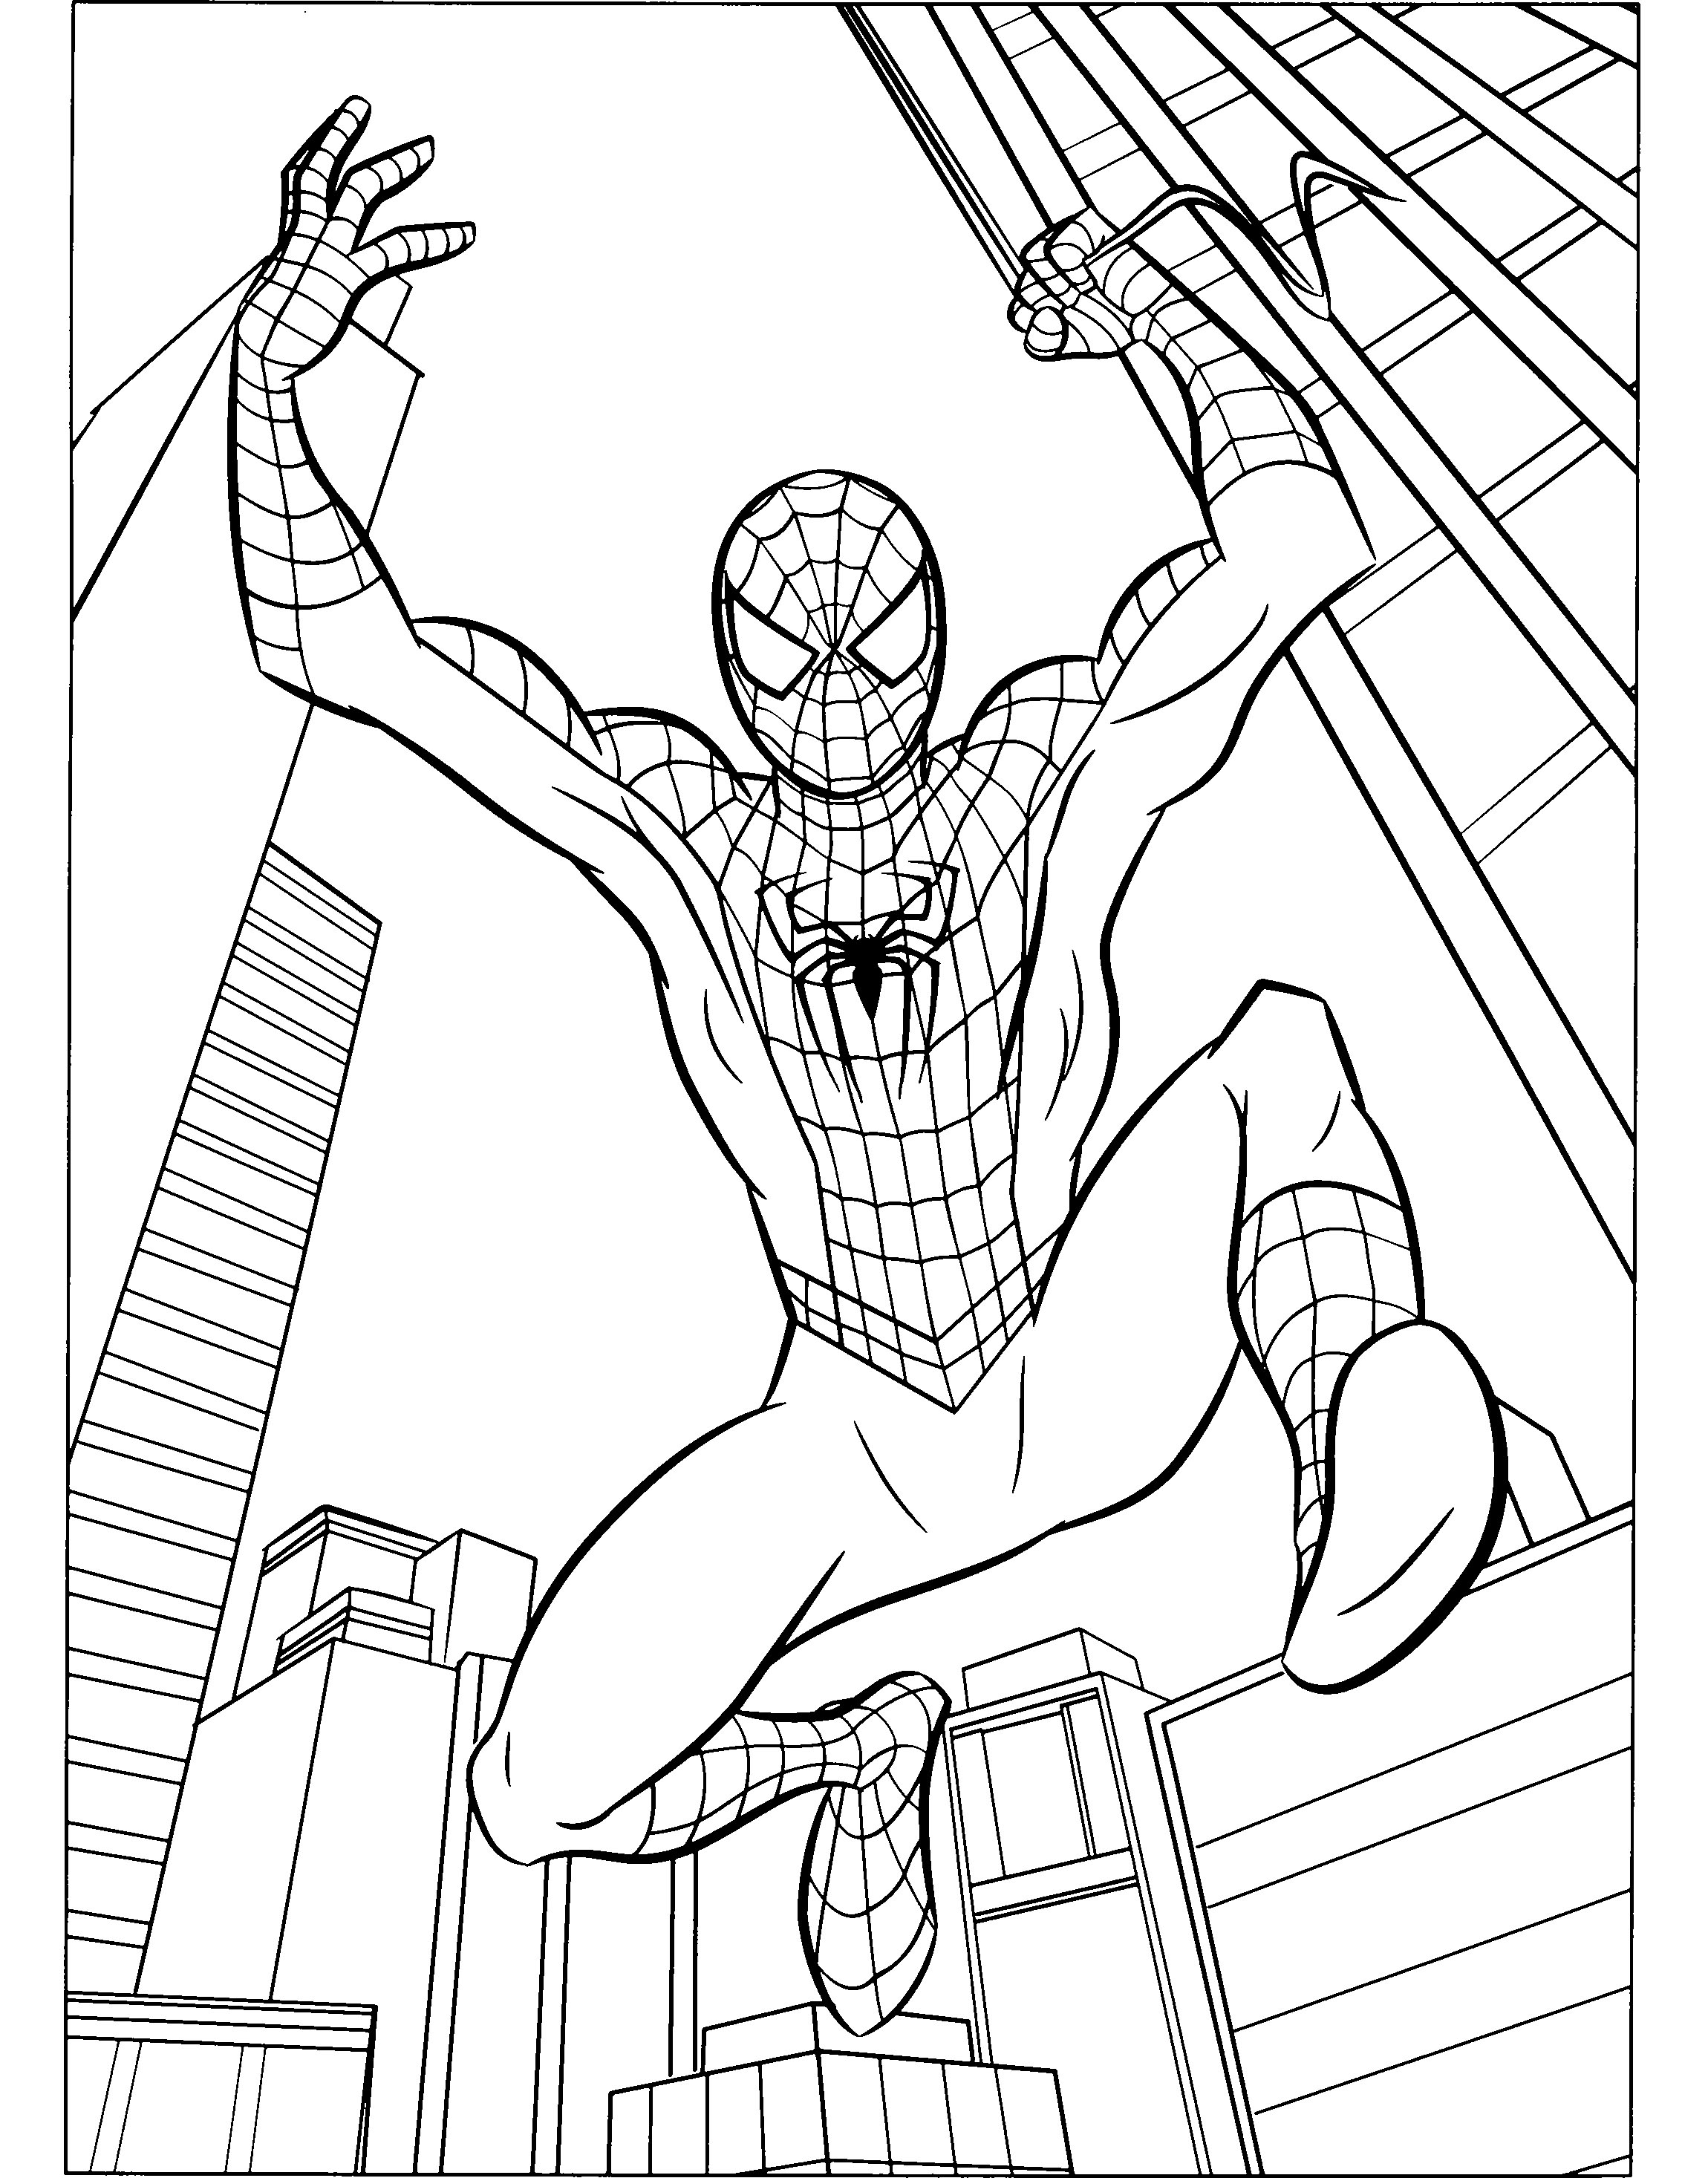 spiderman birthday coloring pages ; spiderman%2520happy%2520birthday%2520coloring%2520pages%2520;%2520horseland-coloring-pages-11-ac-strange-spiderman-coloring-pages-1558